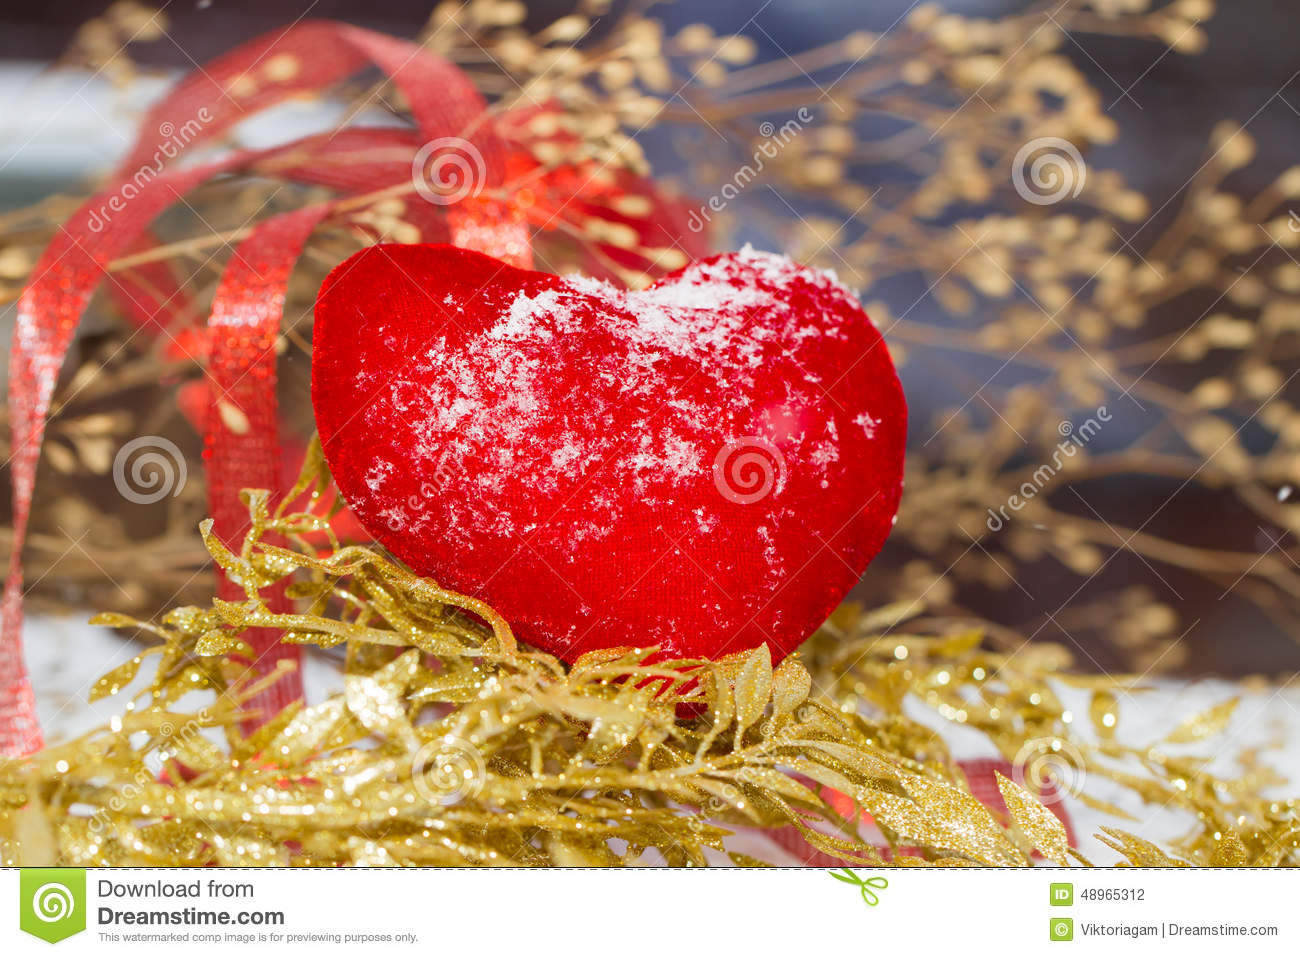 The symbol of love gallery symbol and sign ideas red plush heart as a symbol of love valentines name on a snow red plush heart biocorpaavc